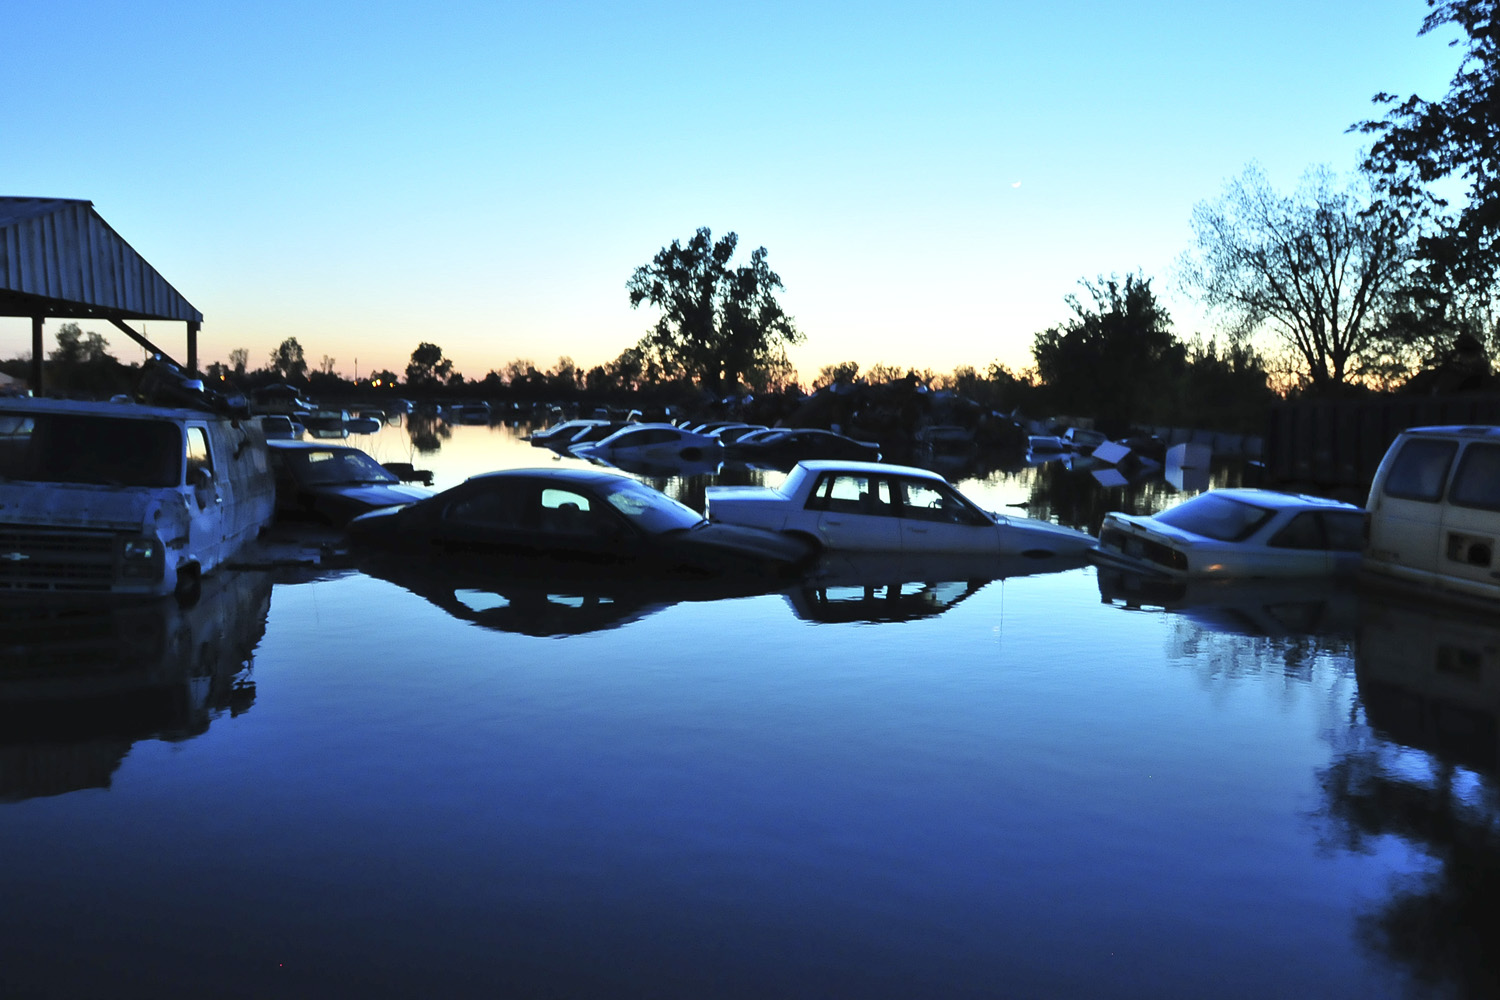 May 4, 2011. Cars are seen soaked in floods in the town of Cairo, Illinois after intense storms and record-breaking rains brought about heavy flooding in southern parts of the state.